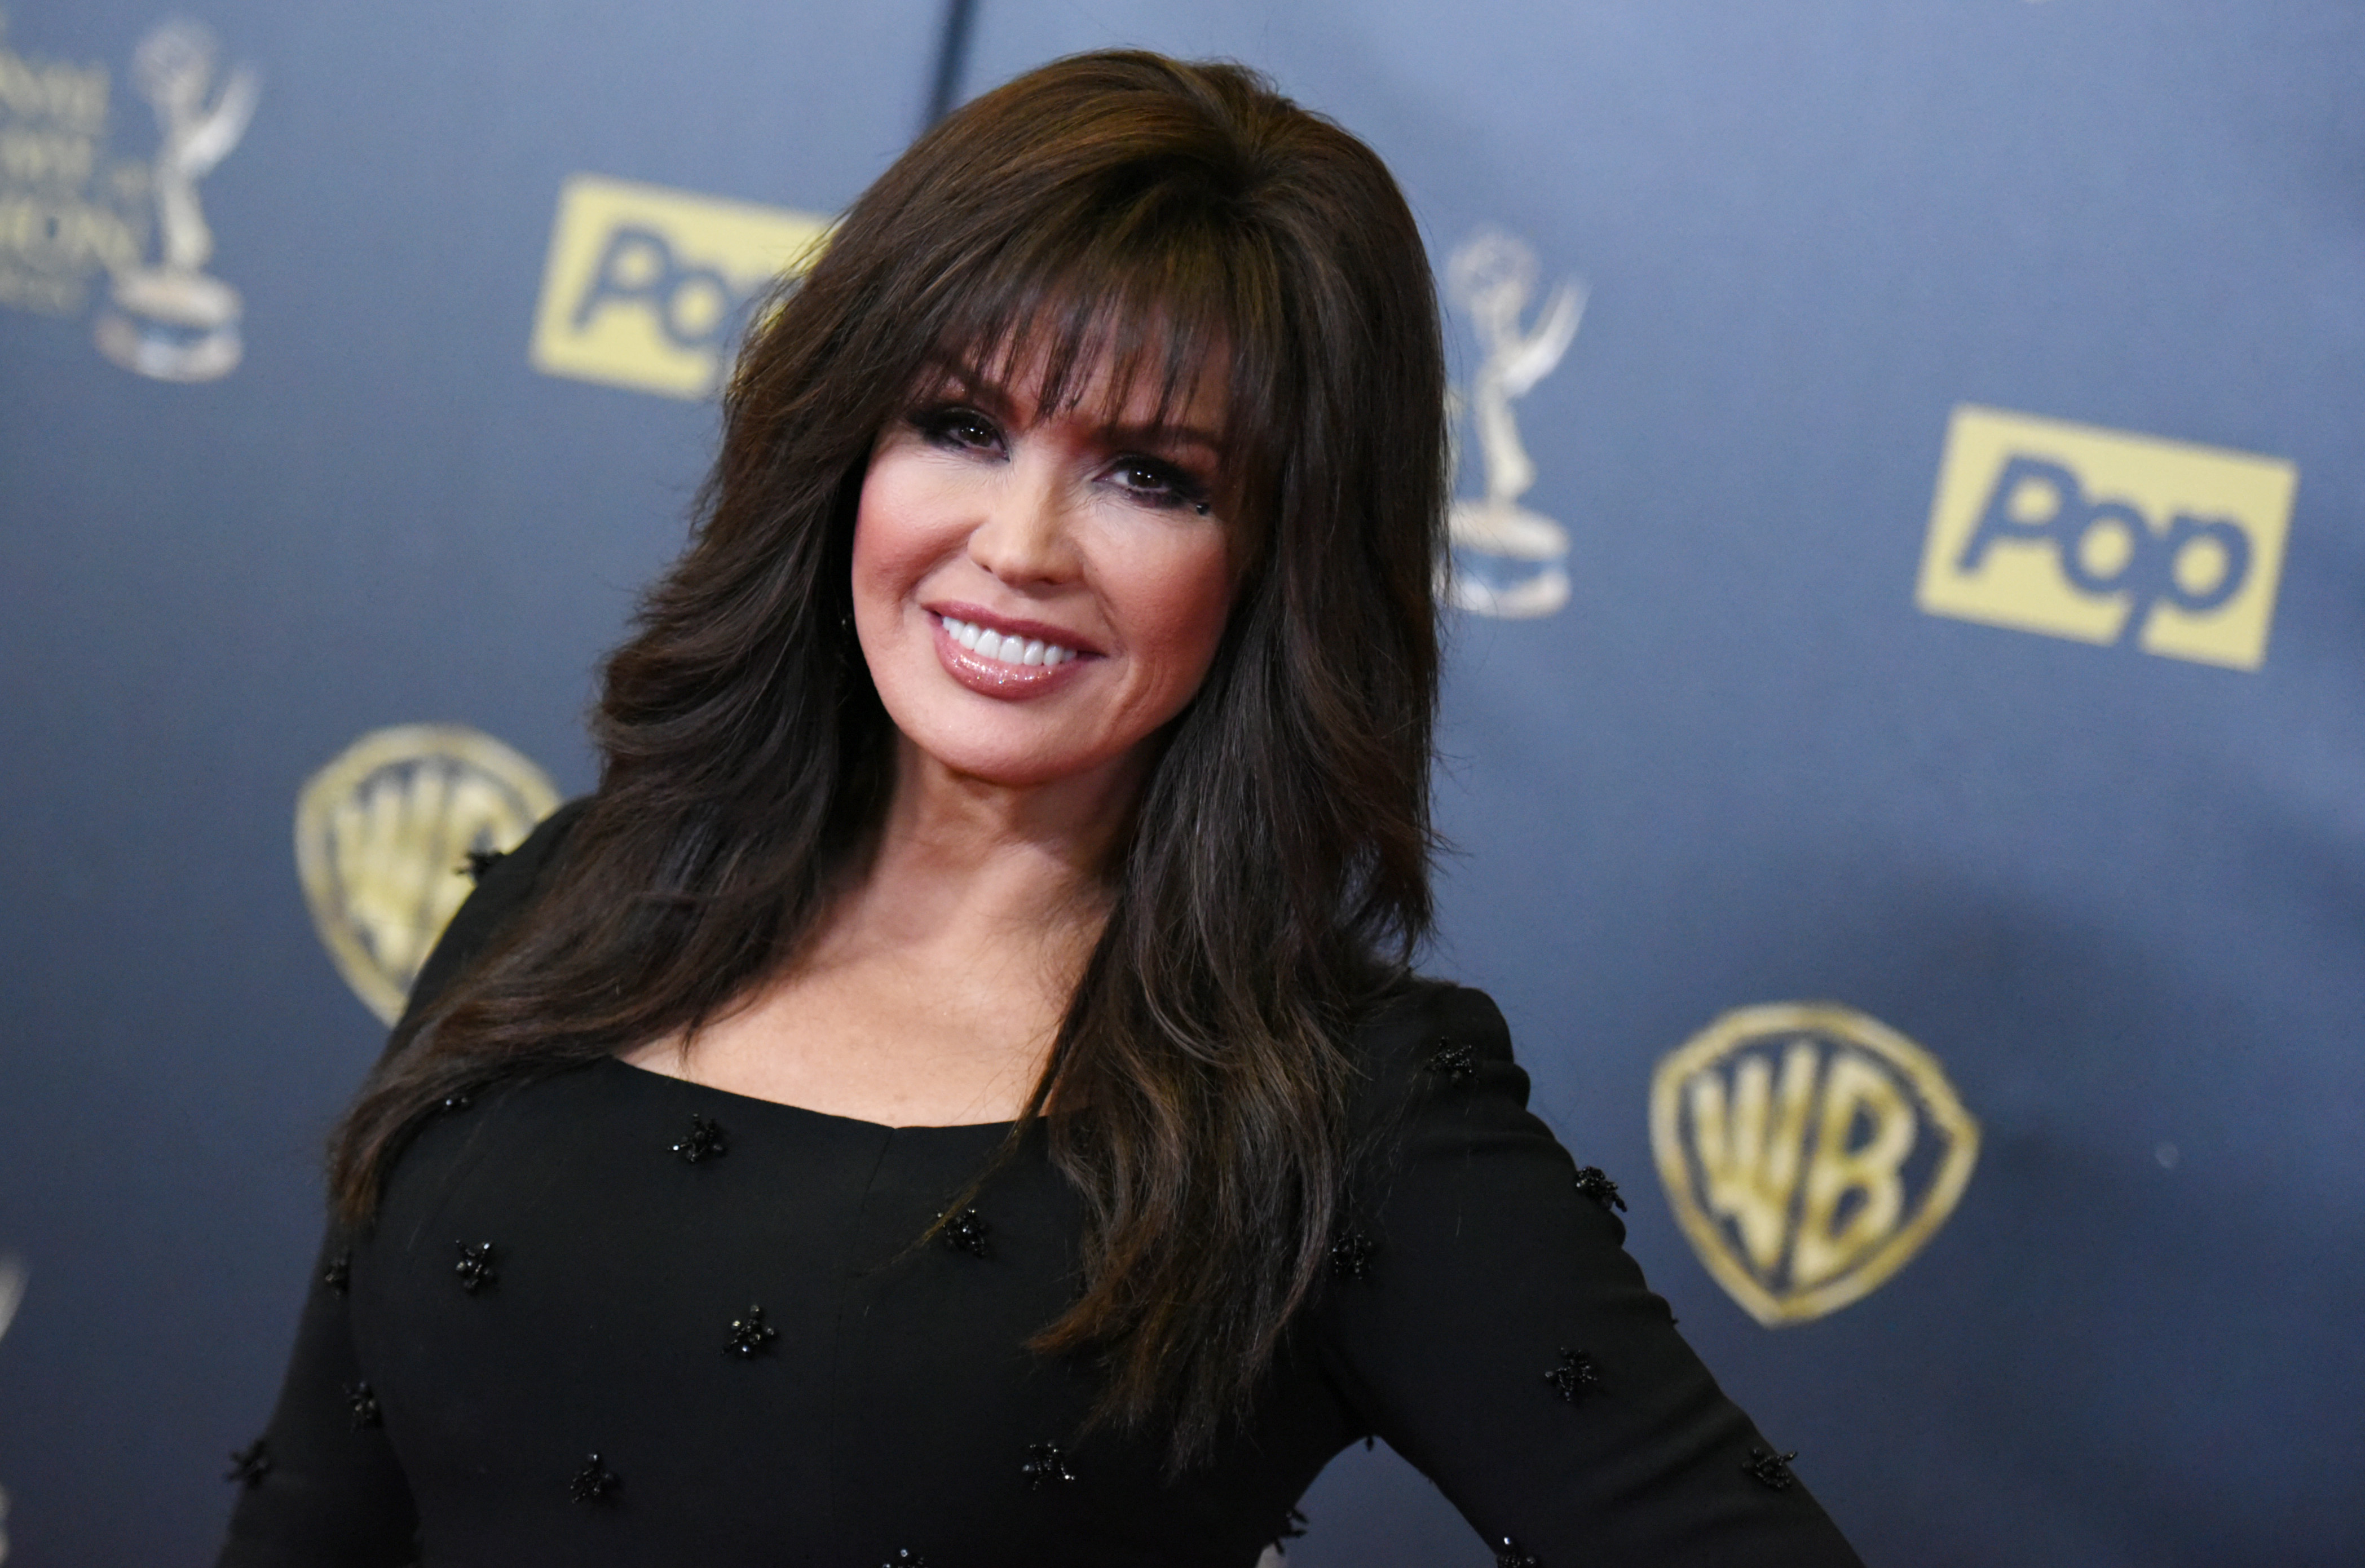 Marie Osmond's Instagram Comments Section Proves She Has The Sweetest and Most Supportive Fans